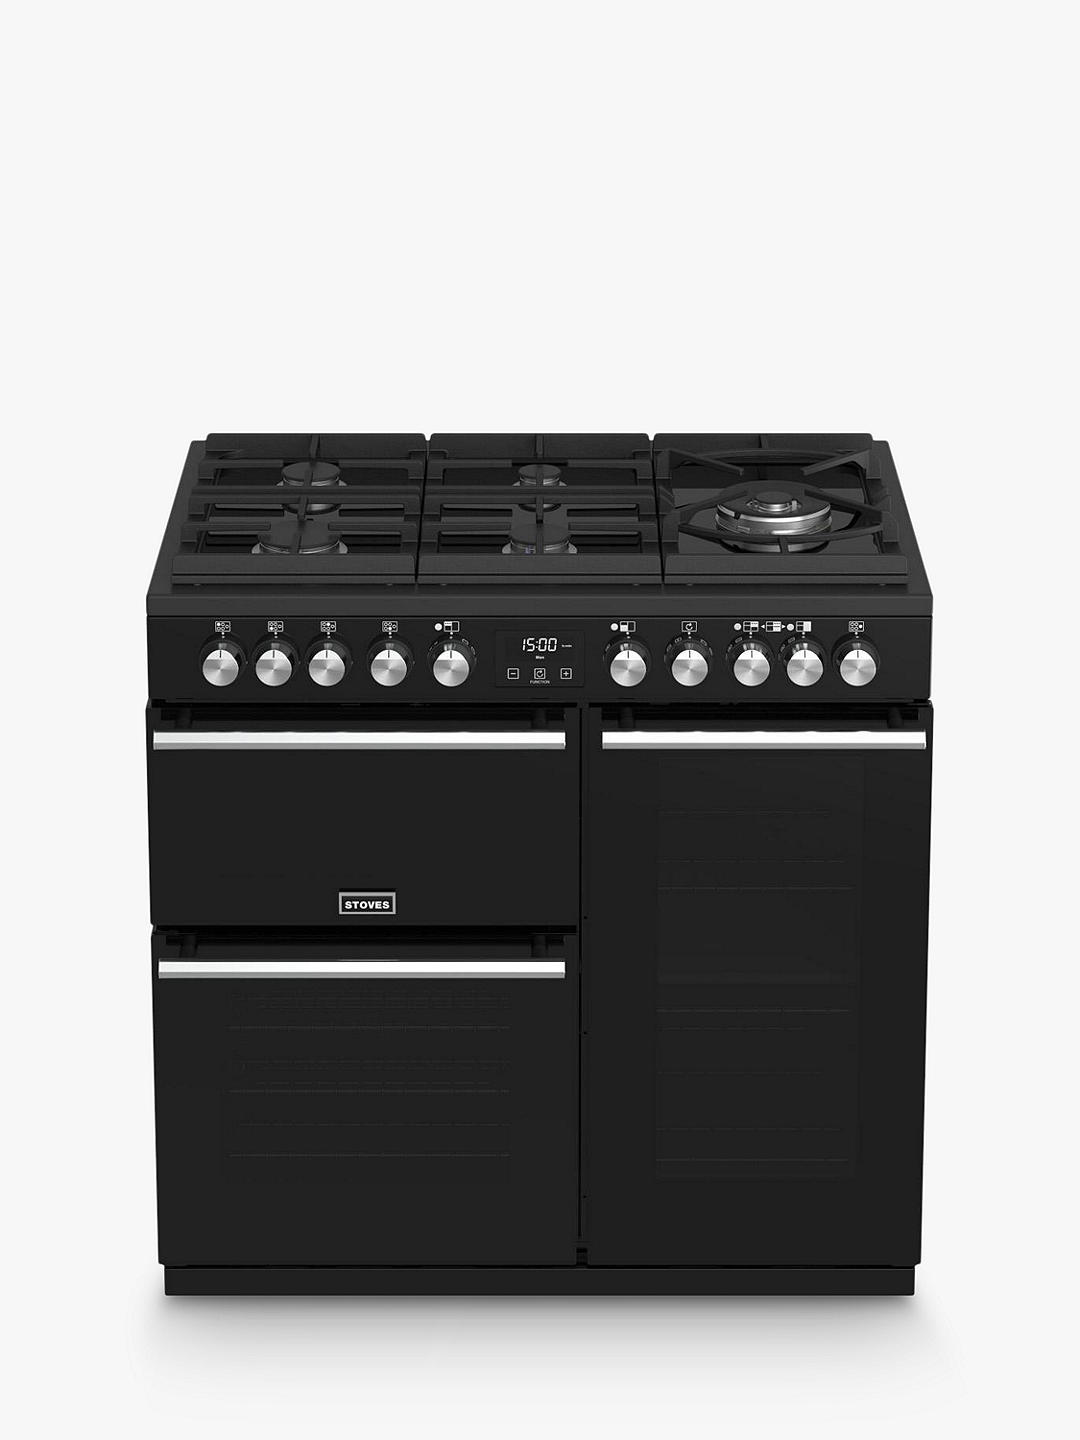 Buy Stoves Precision Deluxe S900GTG Dual Fuel Range Cooker, A/A/A Energy Rating, Black Online at johnlewis.com